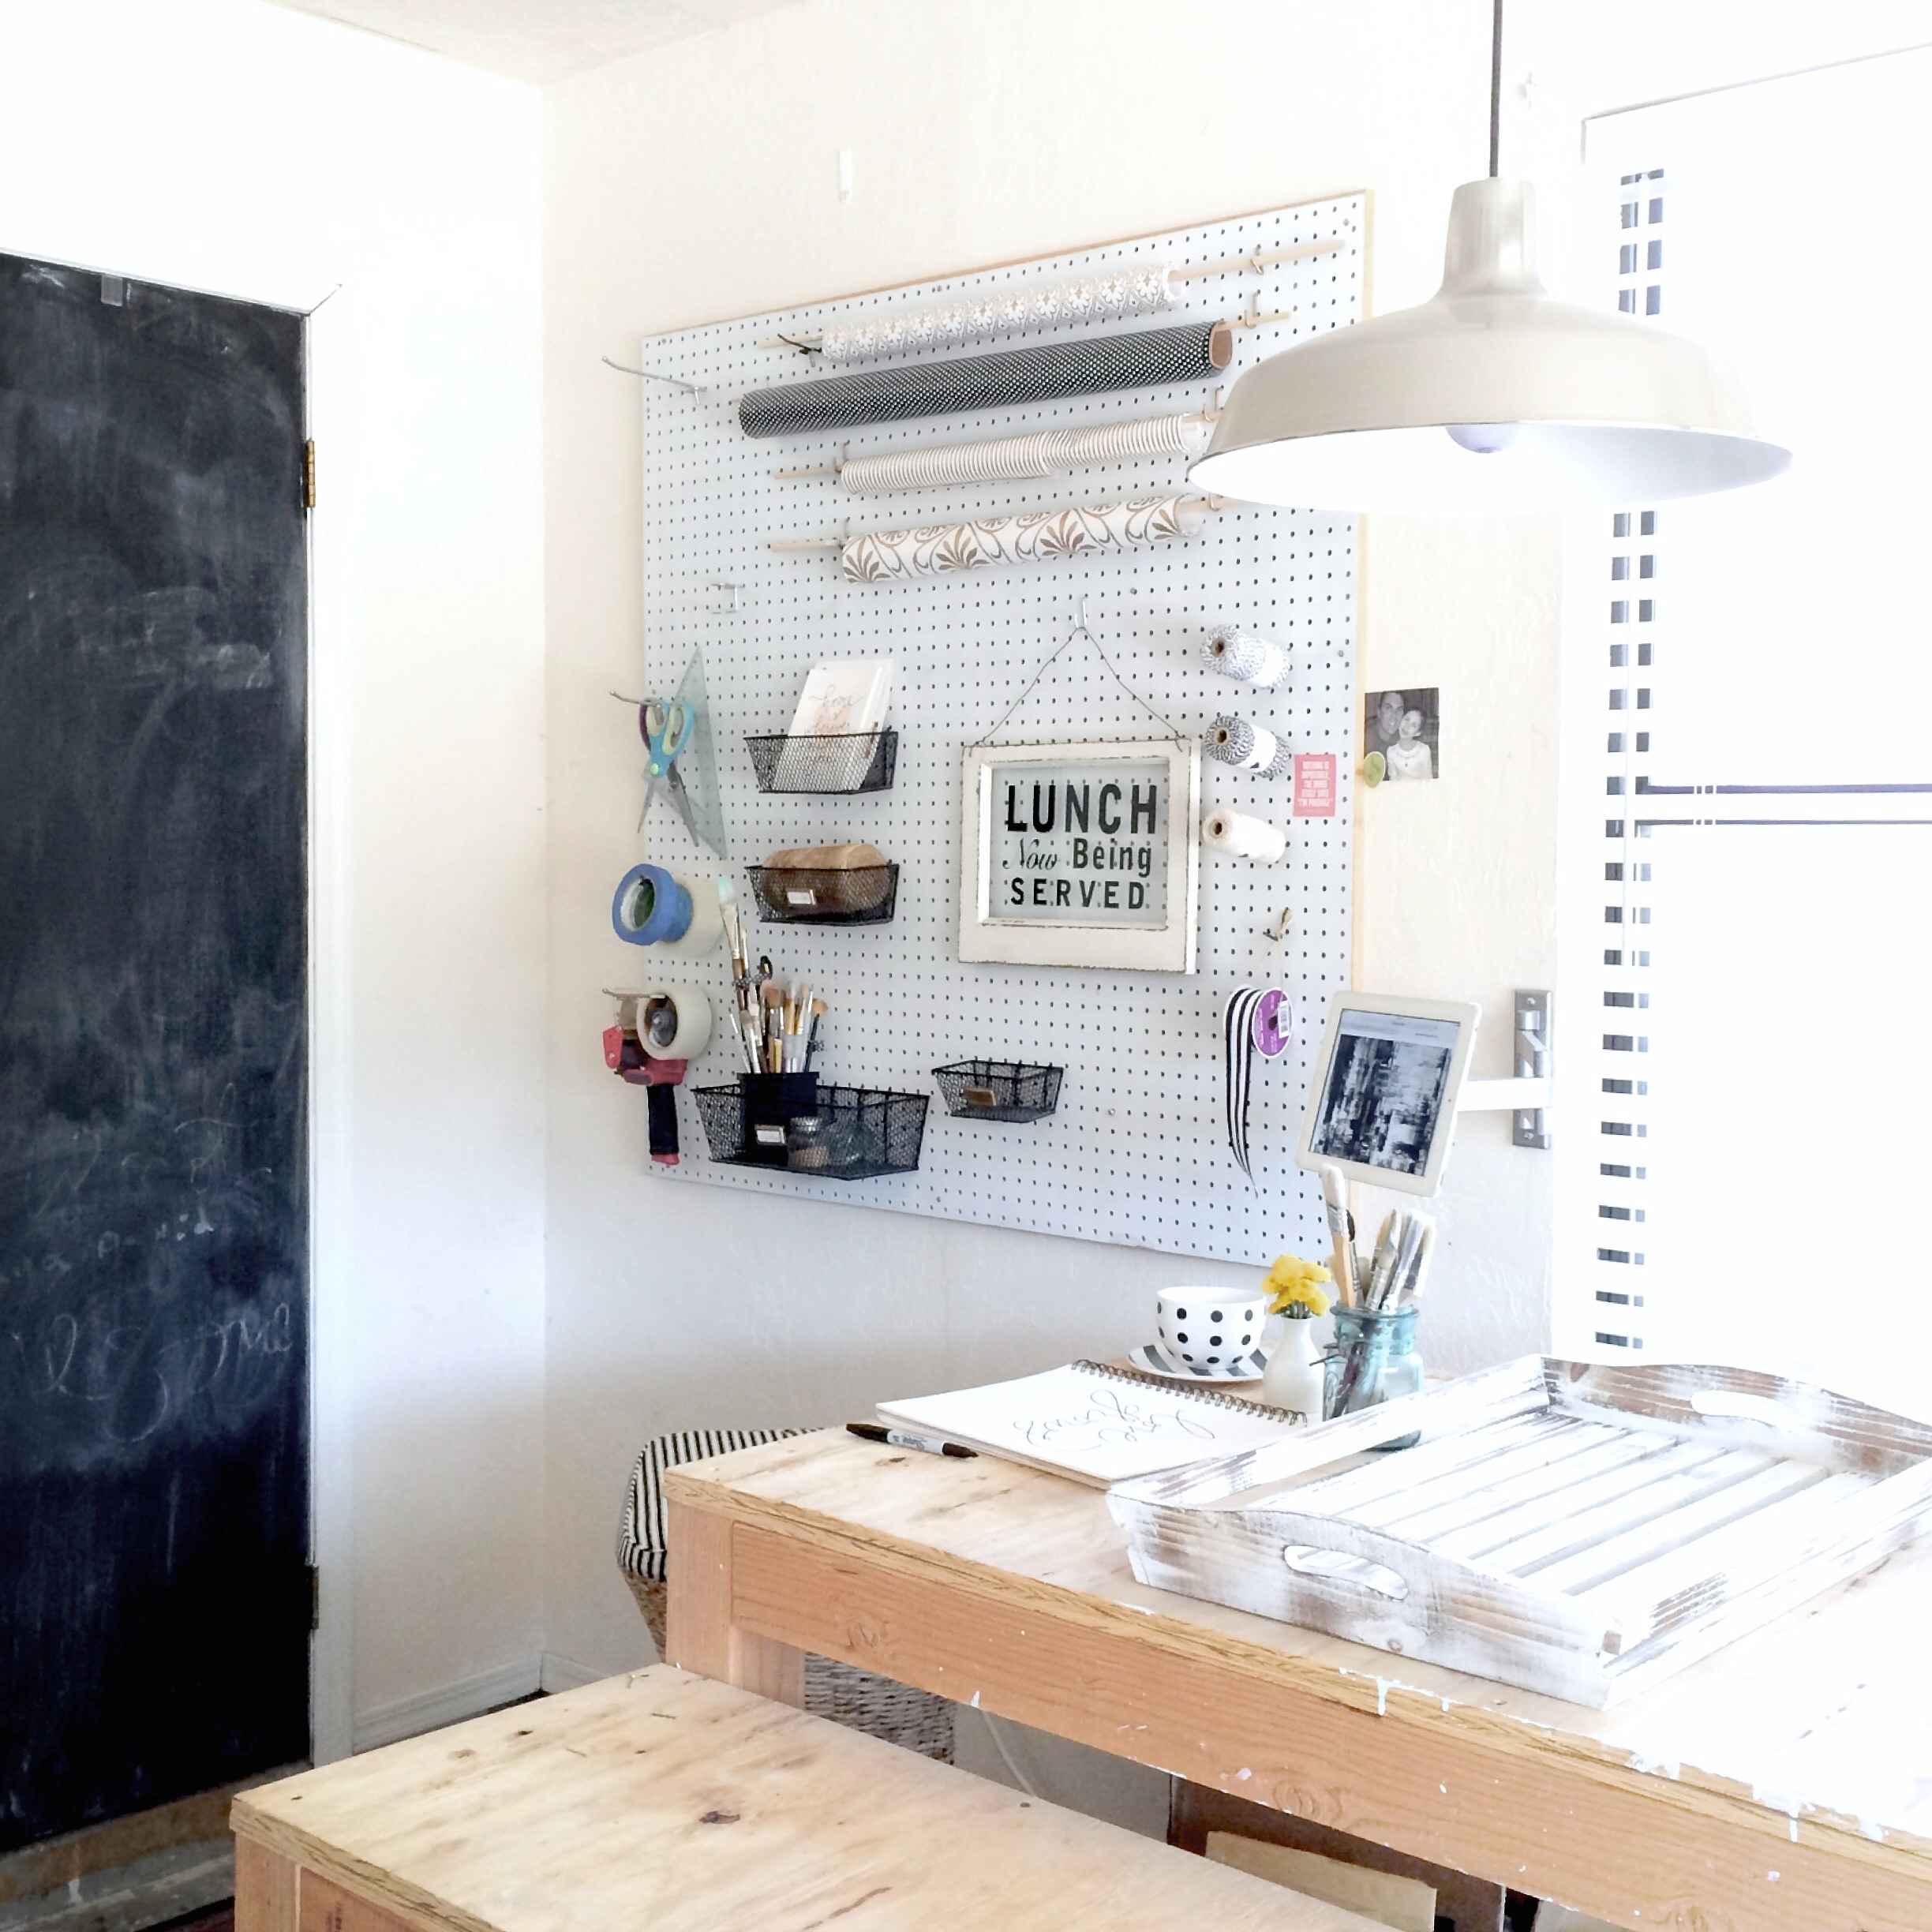 Before & After Aedriel Moxley House Tour : Studio Tour (the little corner in the garage)